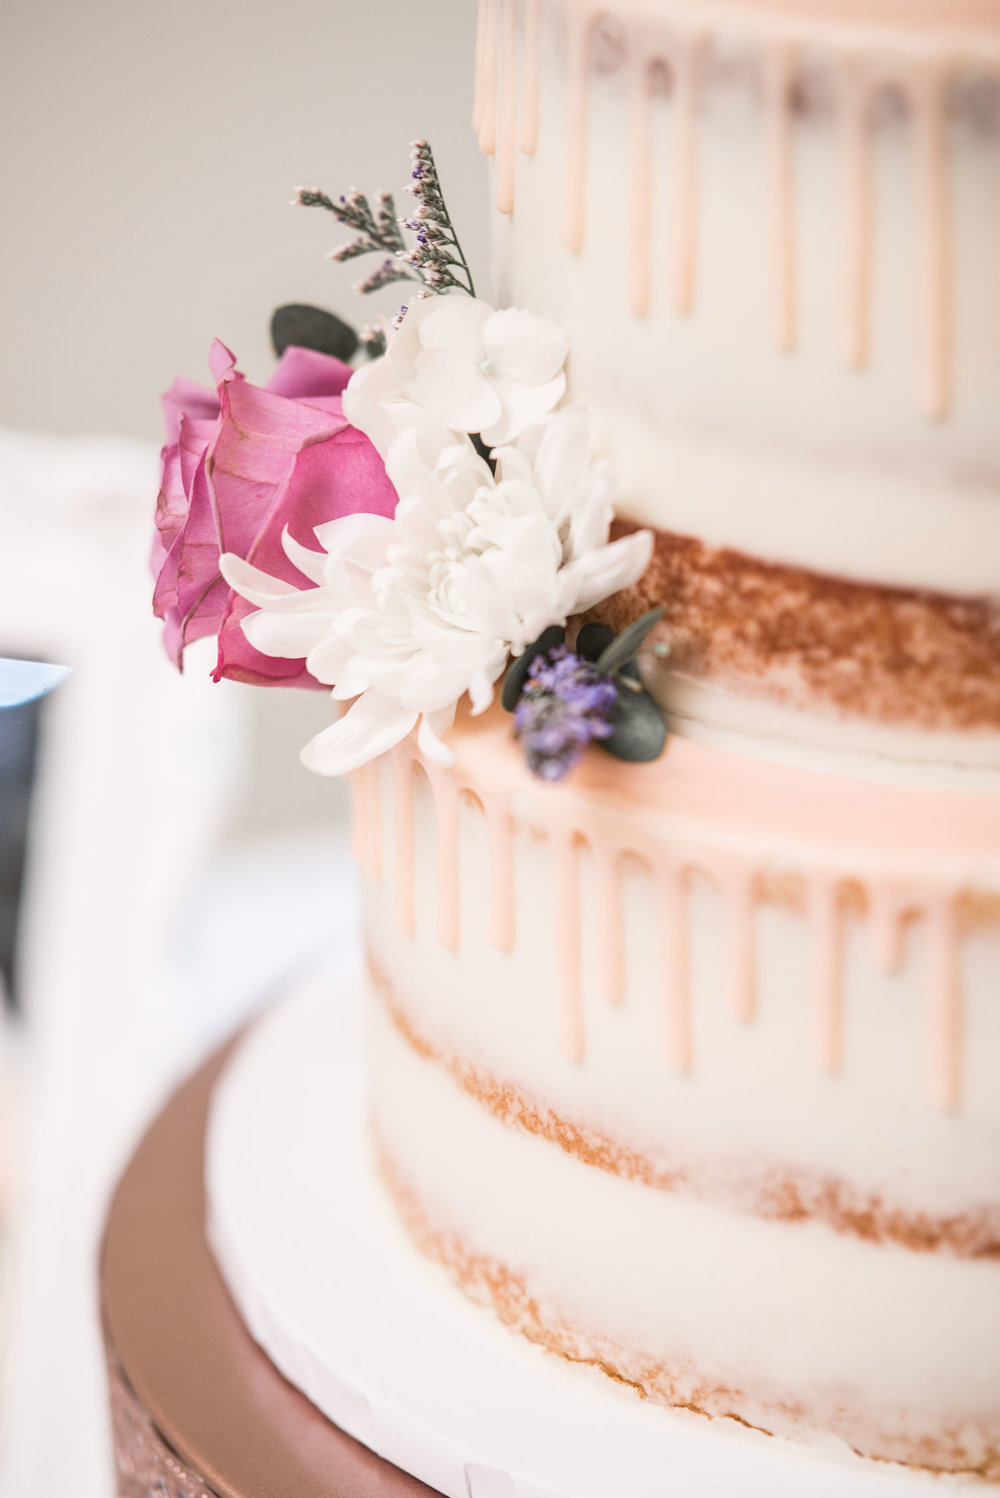 47 sweet treats bakery austin texas wedding cake.jpg